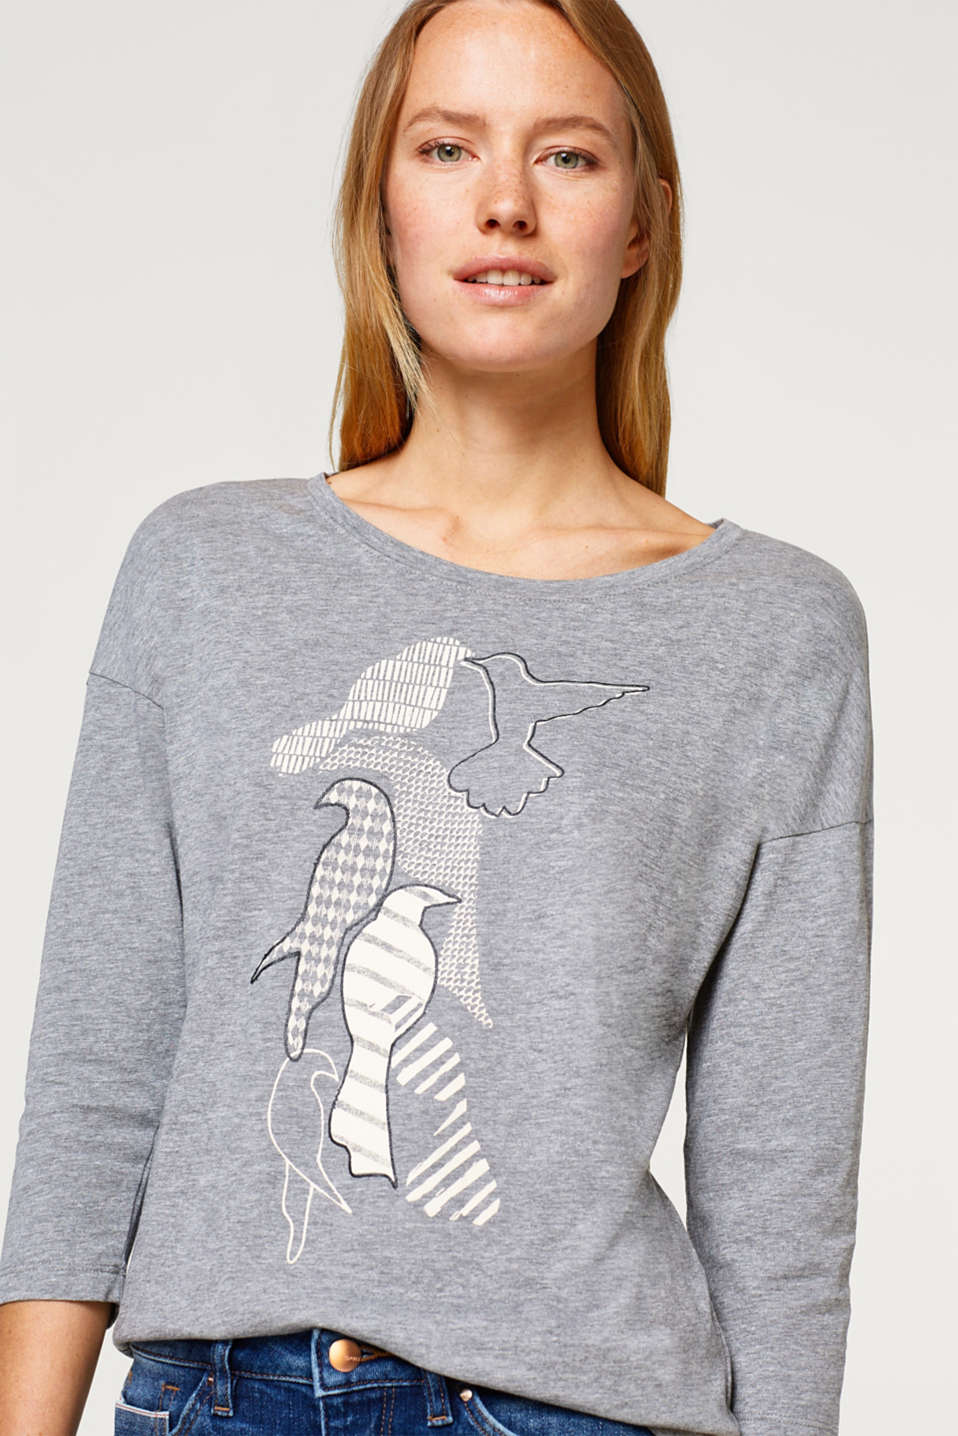 Esprit - Melange artwork top in blended cotton